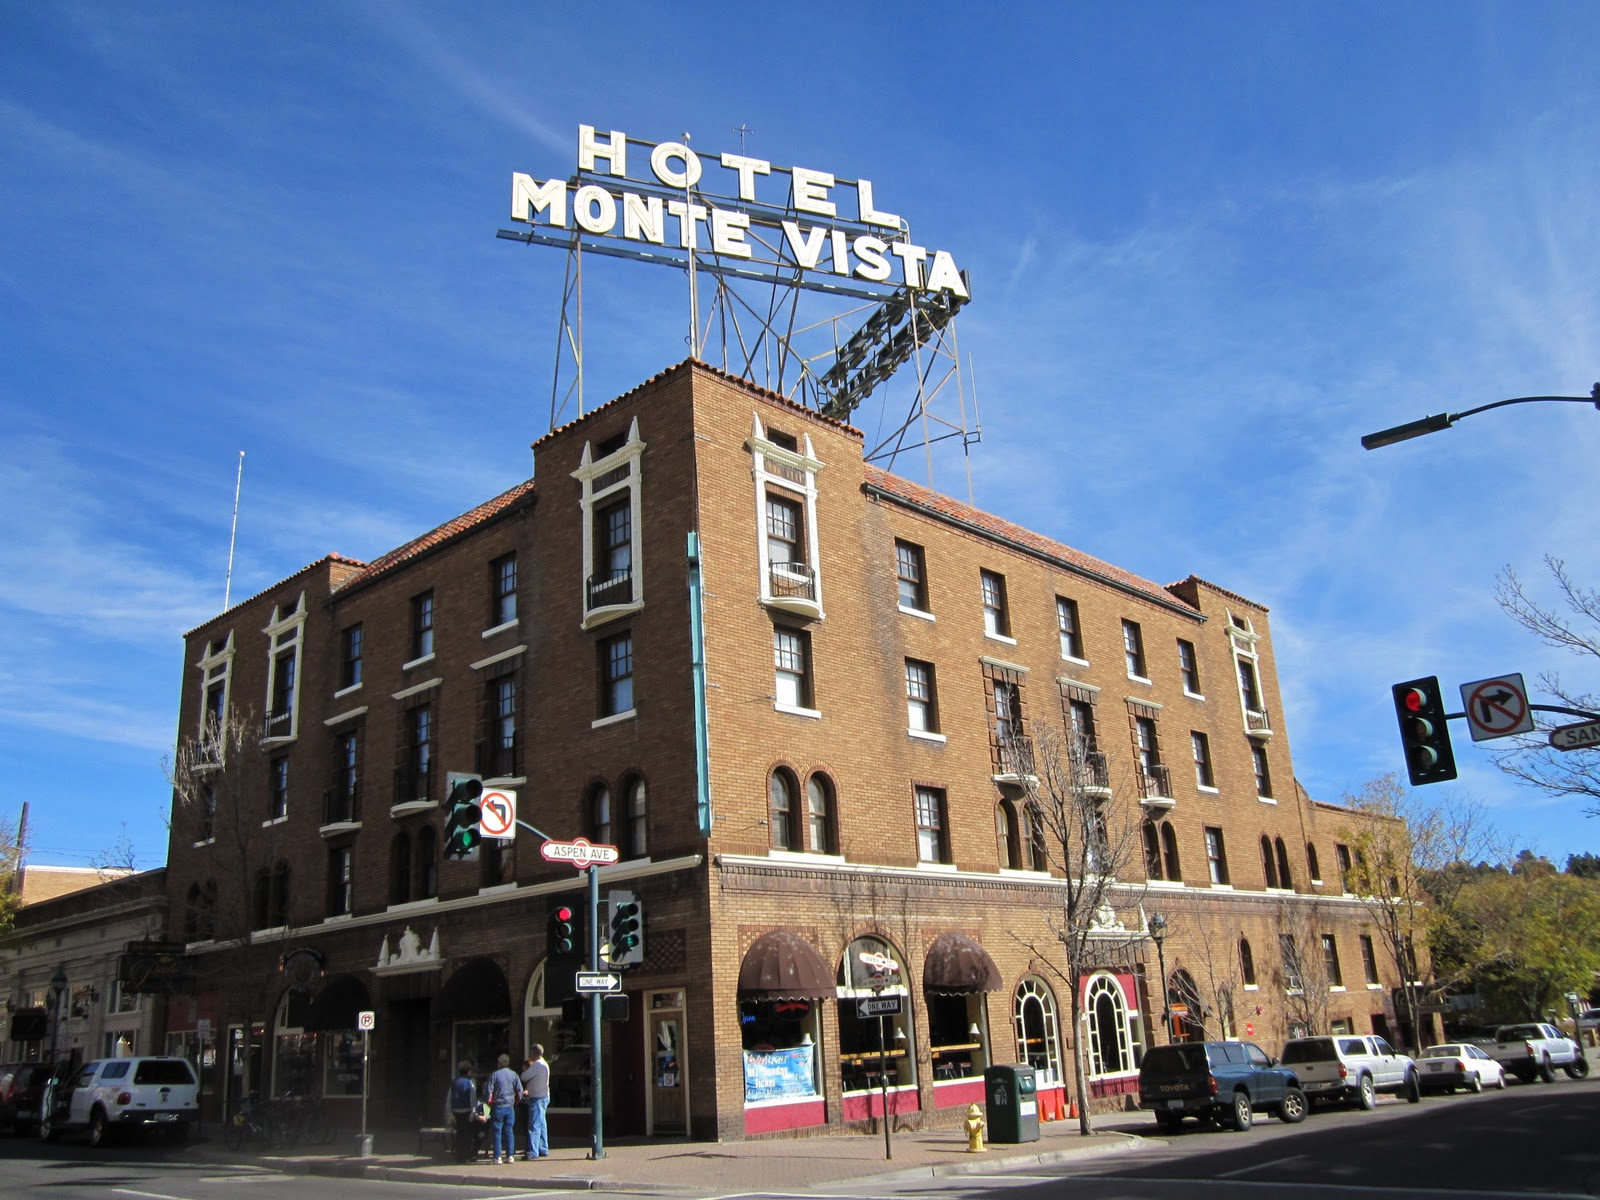 monte vista lesbian personals Discover what it would be like to live in the monte vista neighborhood of san antonio, tx straight from people who live here review crime maps, check out nearby restaurants and amenities, and read what locals say about monte vista.